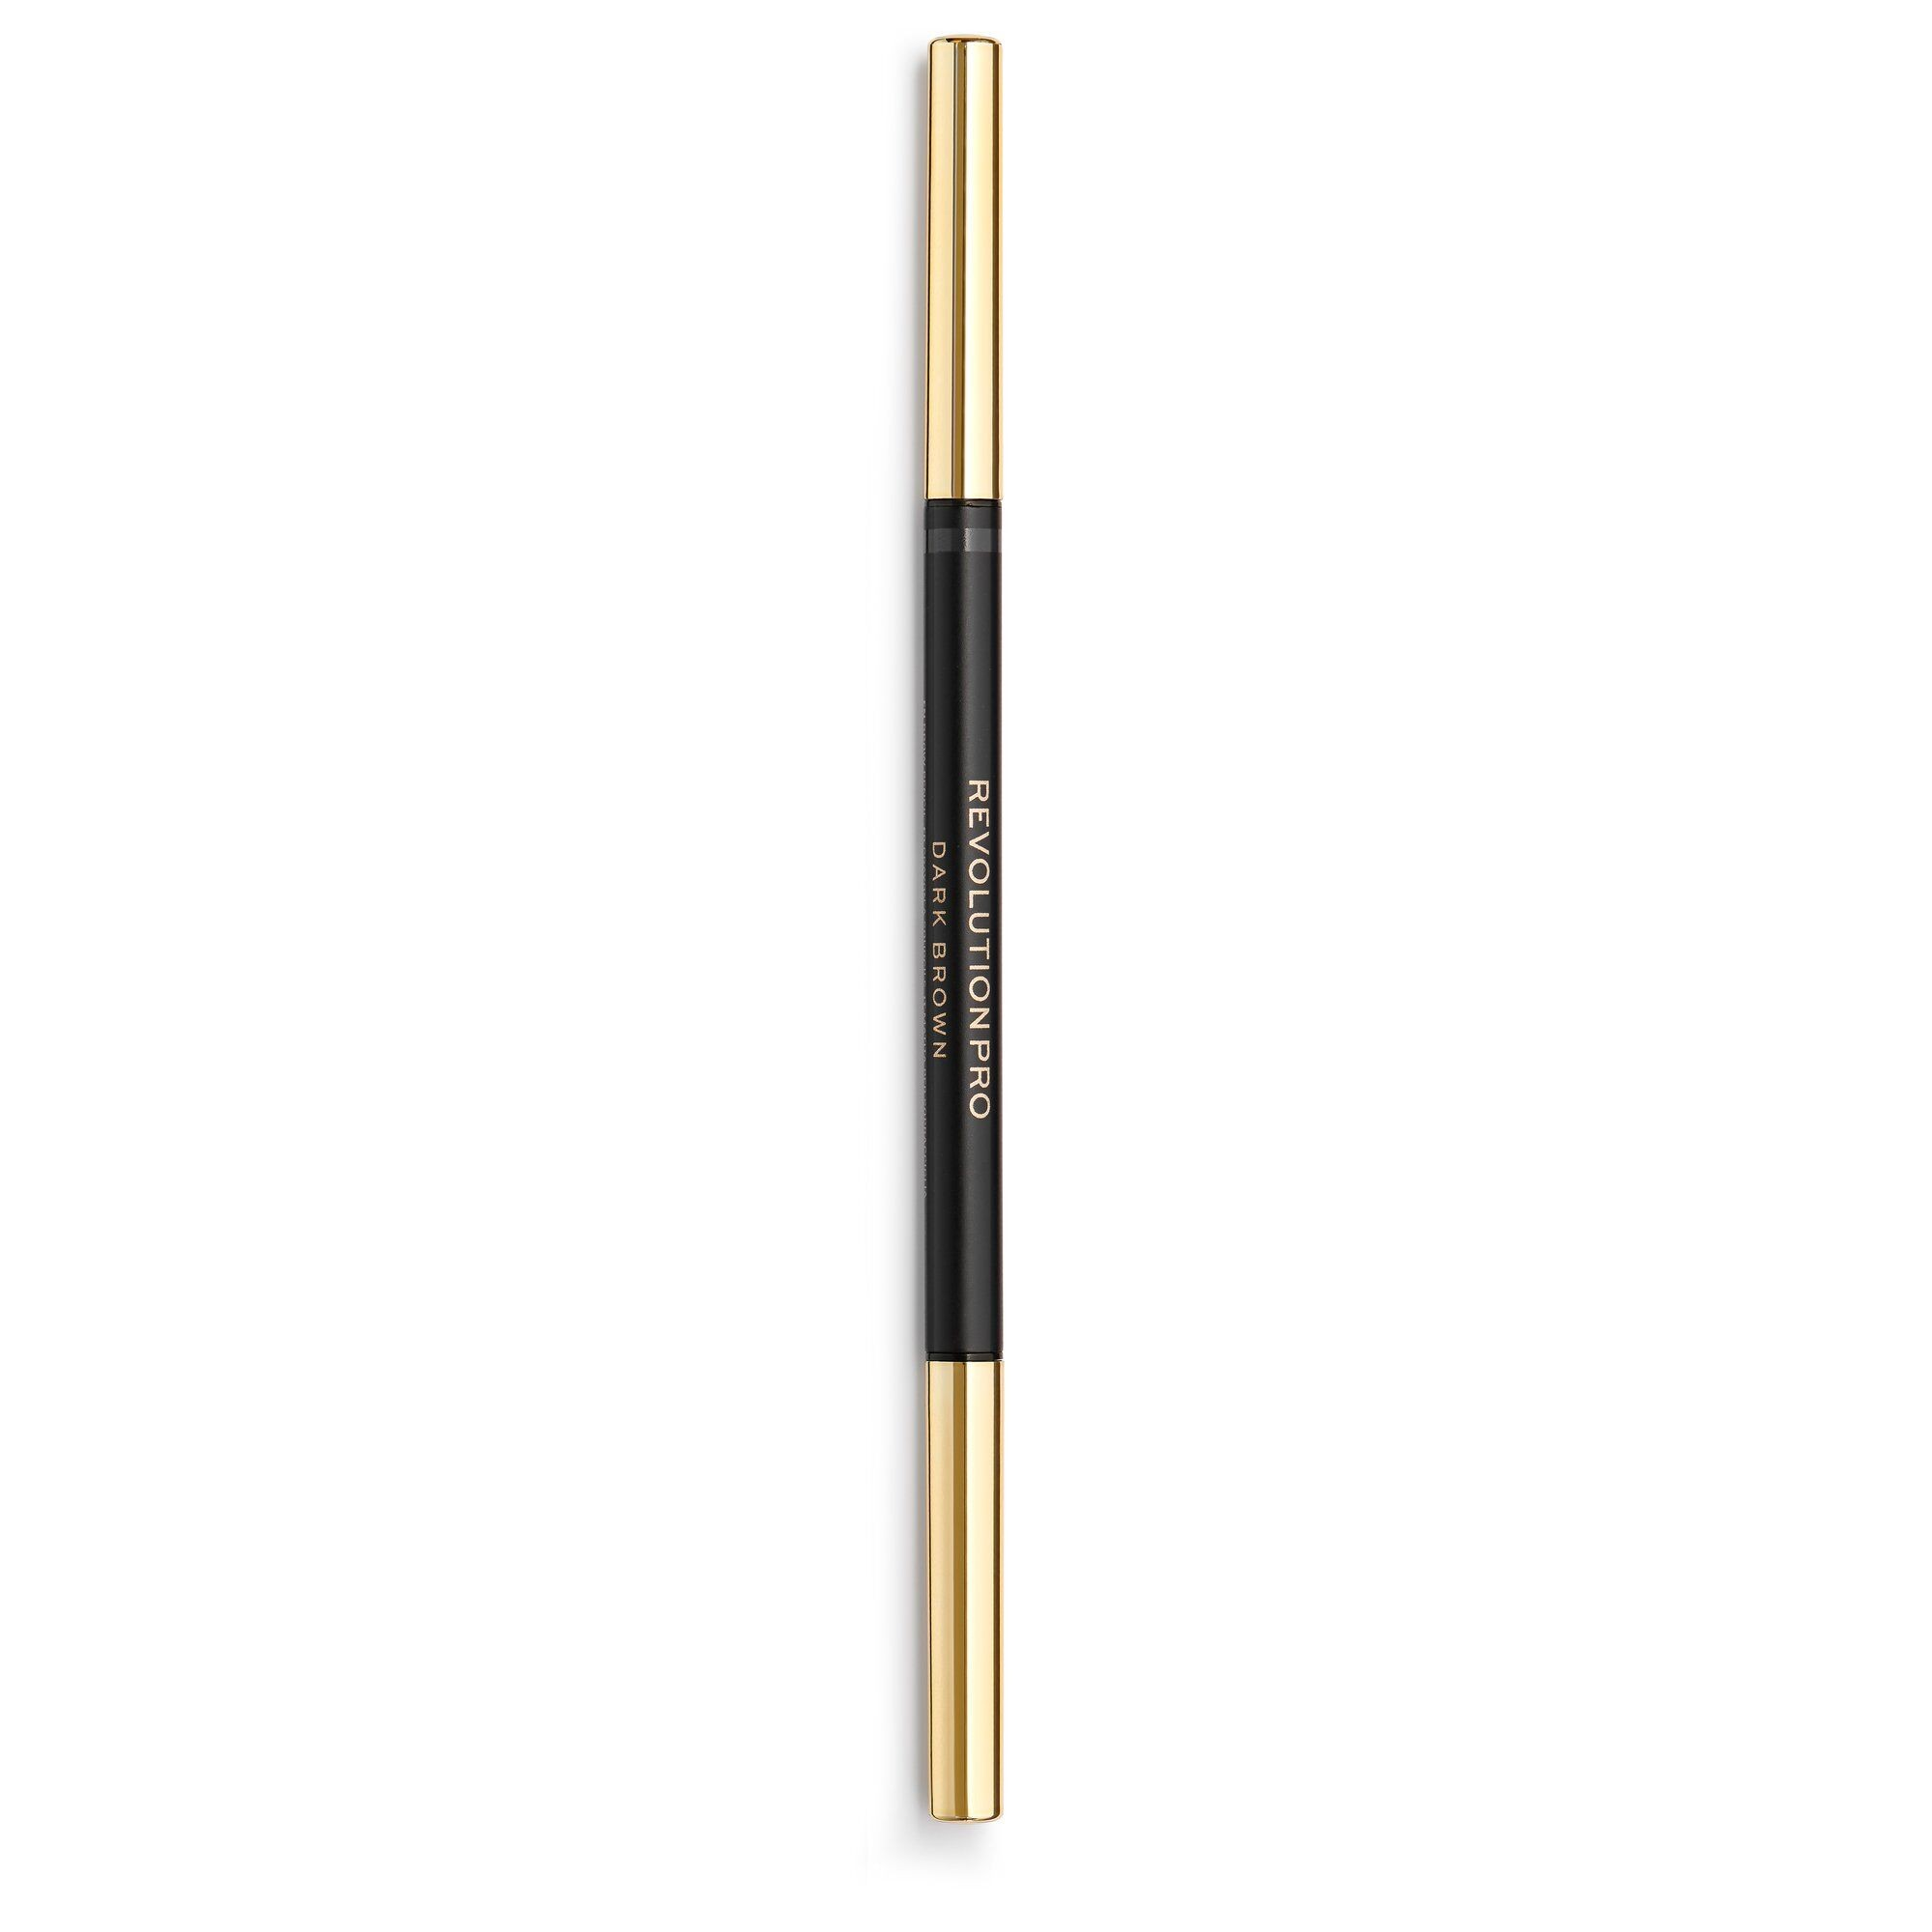 Augenbrauen-Stift - Define & Fill Micro Brow Pencil